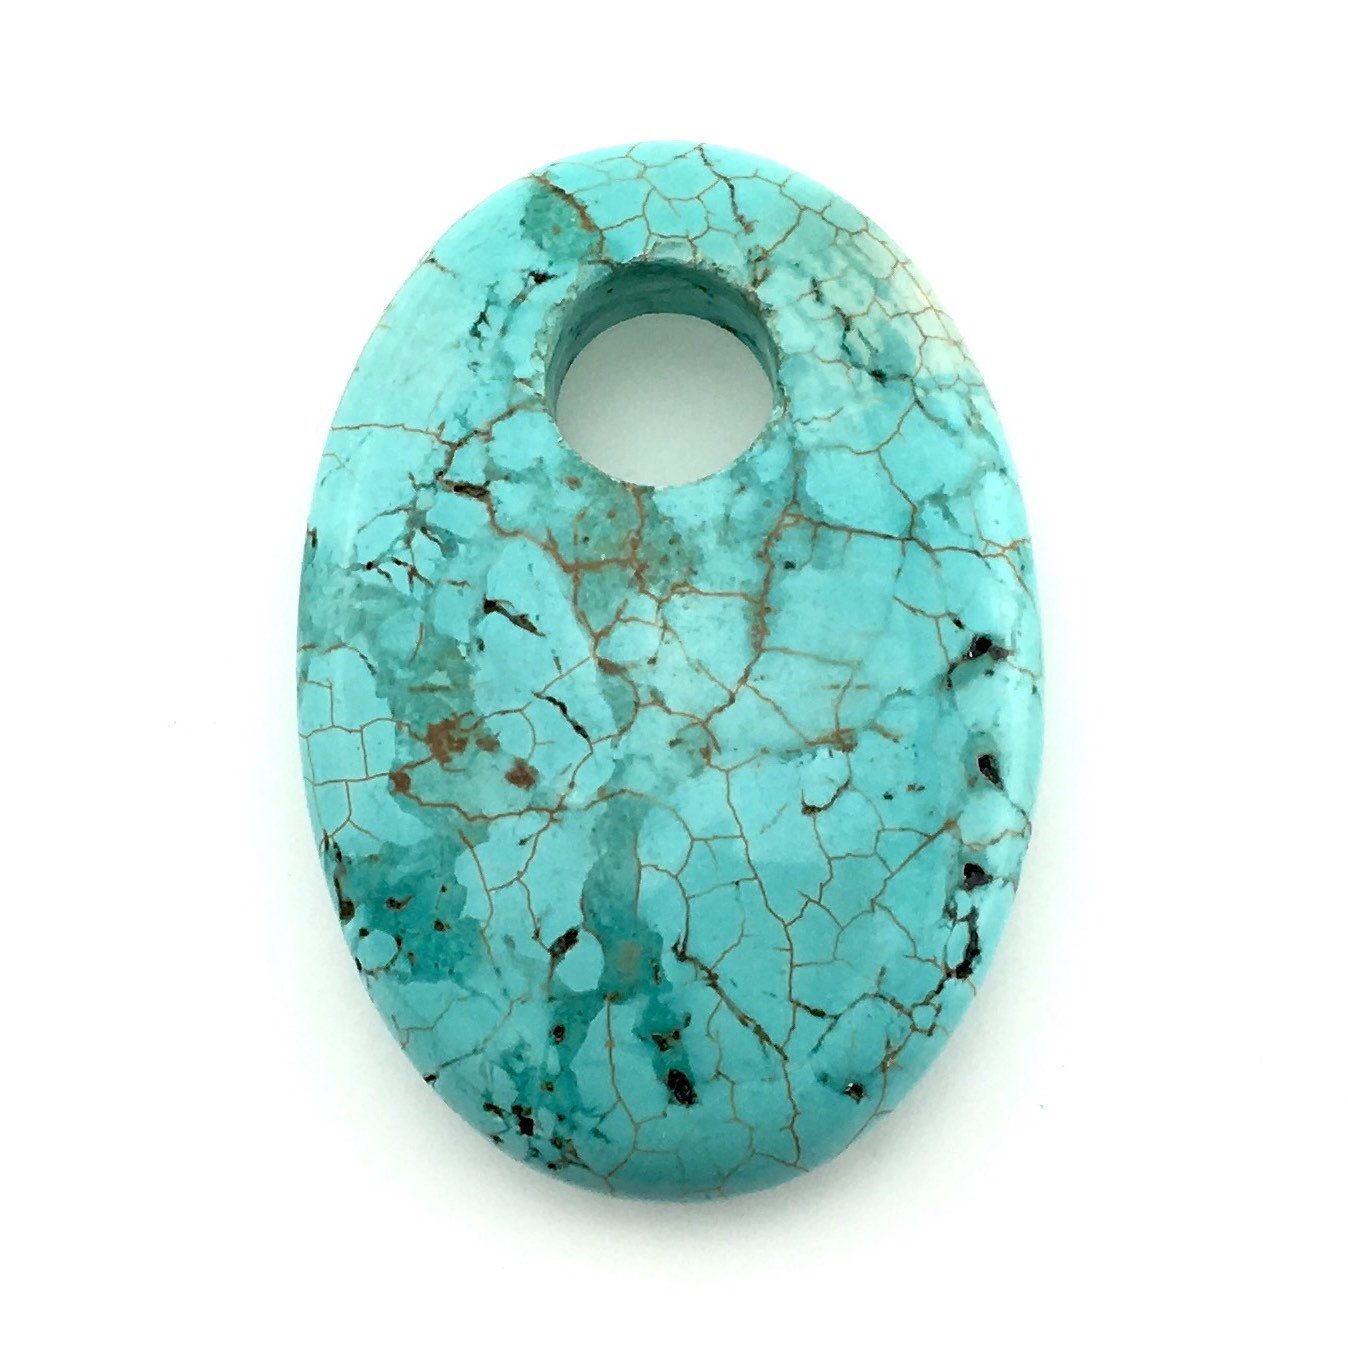 Turquoise jewelry turquoise pendant necklace mens turquoise turquoise jewelry turquoise pendant necklace mens turquoise pendant turquoise donut bead december birthstone oval turquoise pendant aloadofball Image collections